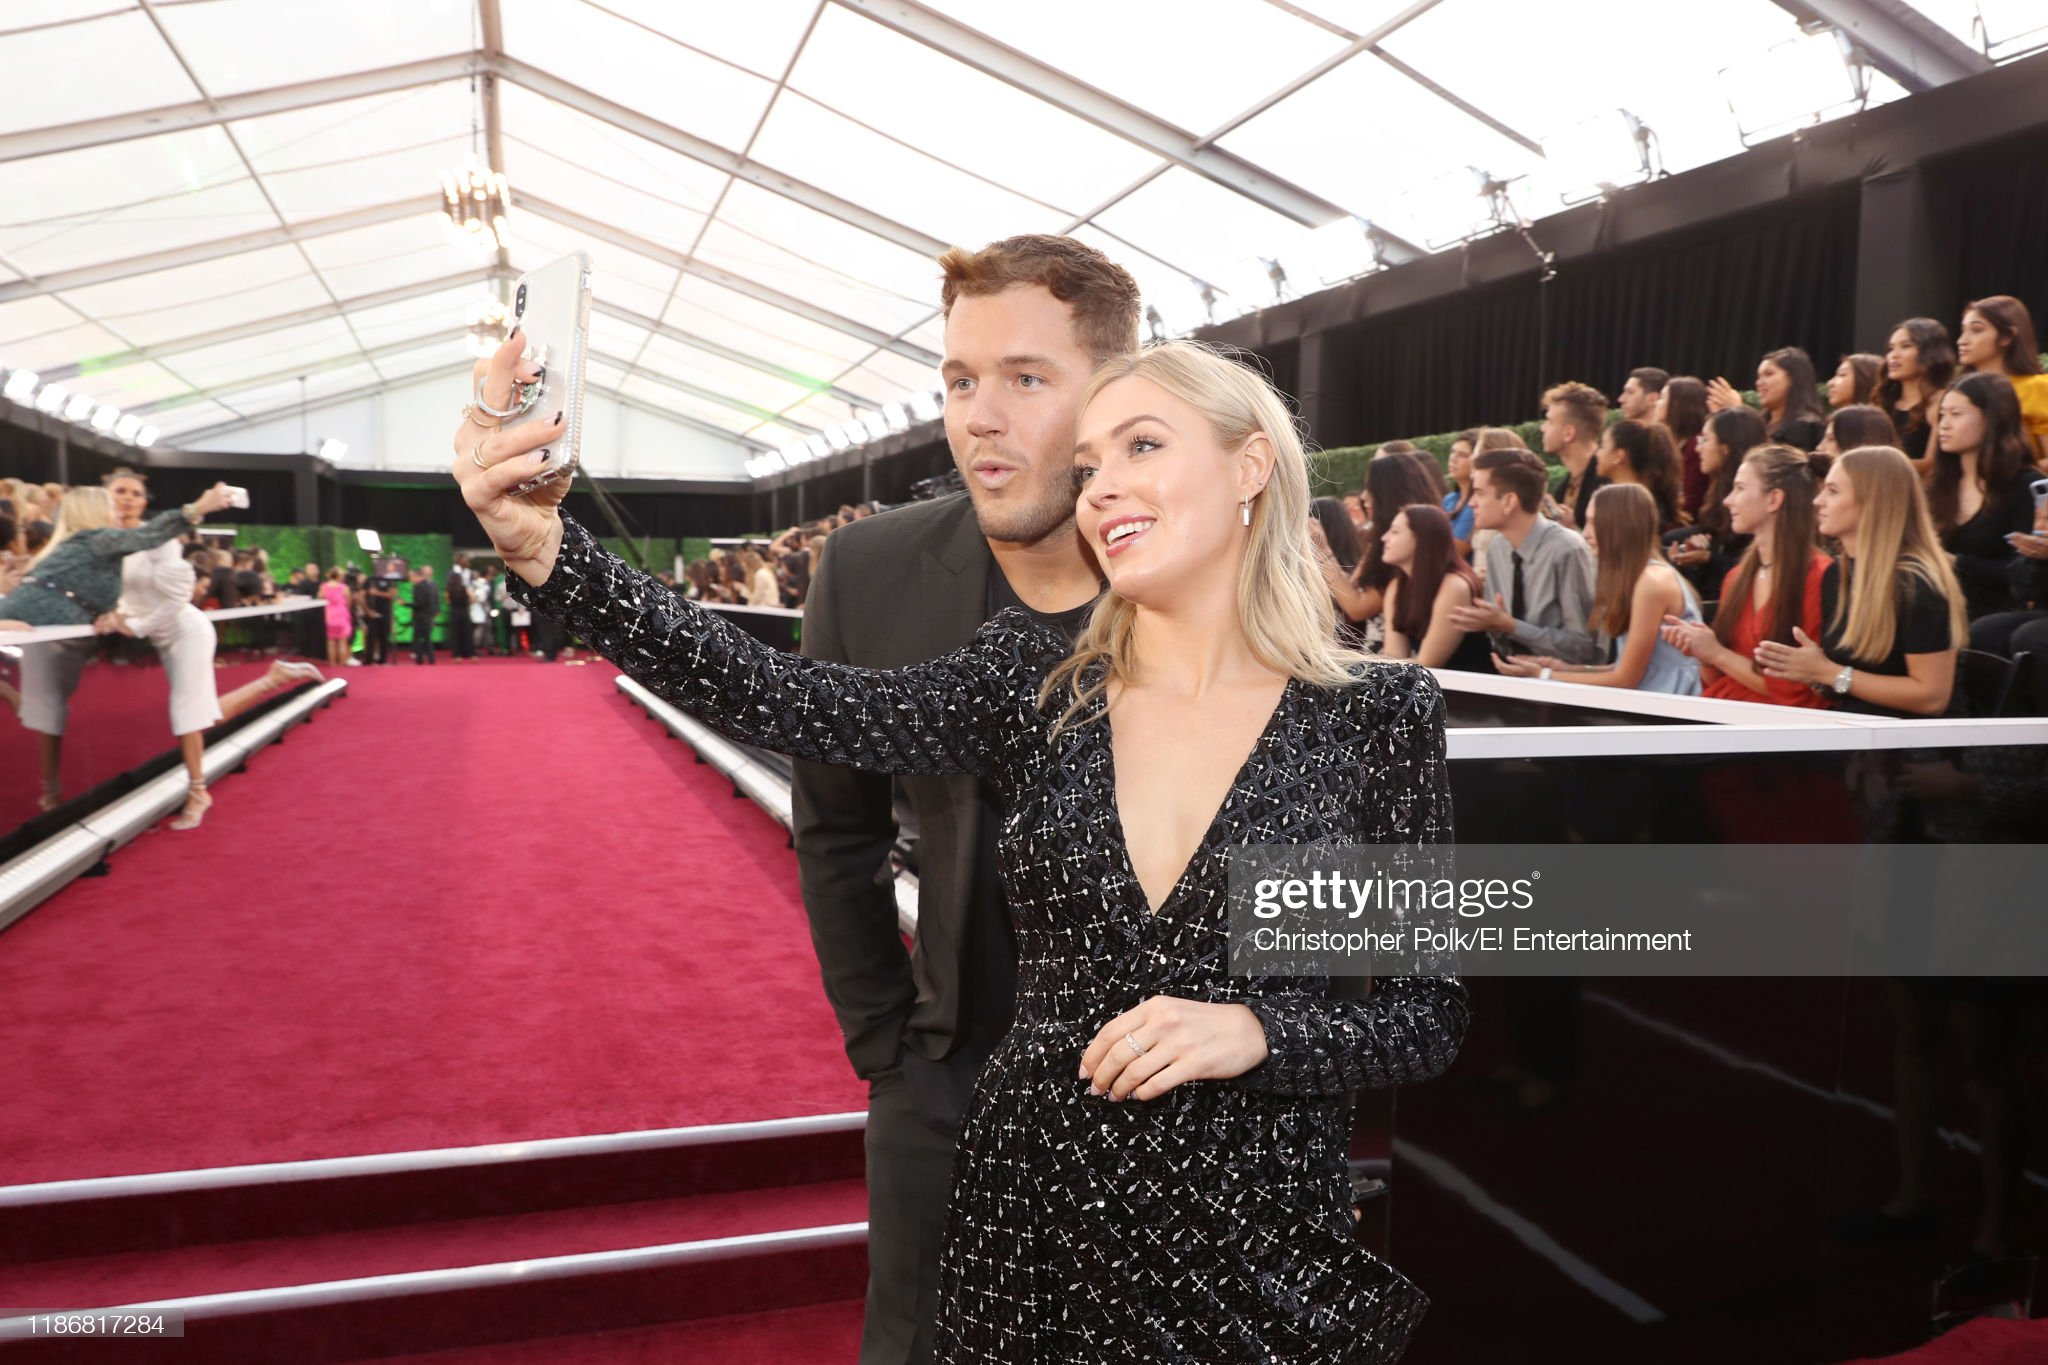 Colton Underwood & Cassie Randolph - Bachelor 23 - Discussion - Page 14 Pictured-colton-underwood-and-cassie-randolph-arrive-to-the-2019-e-picture-id1186817284?s=2048x2048